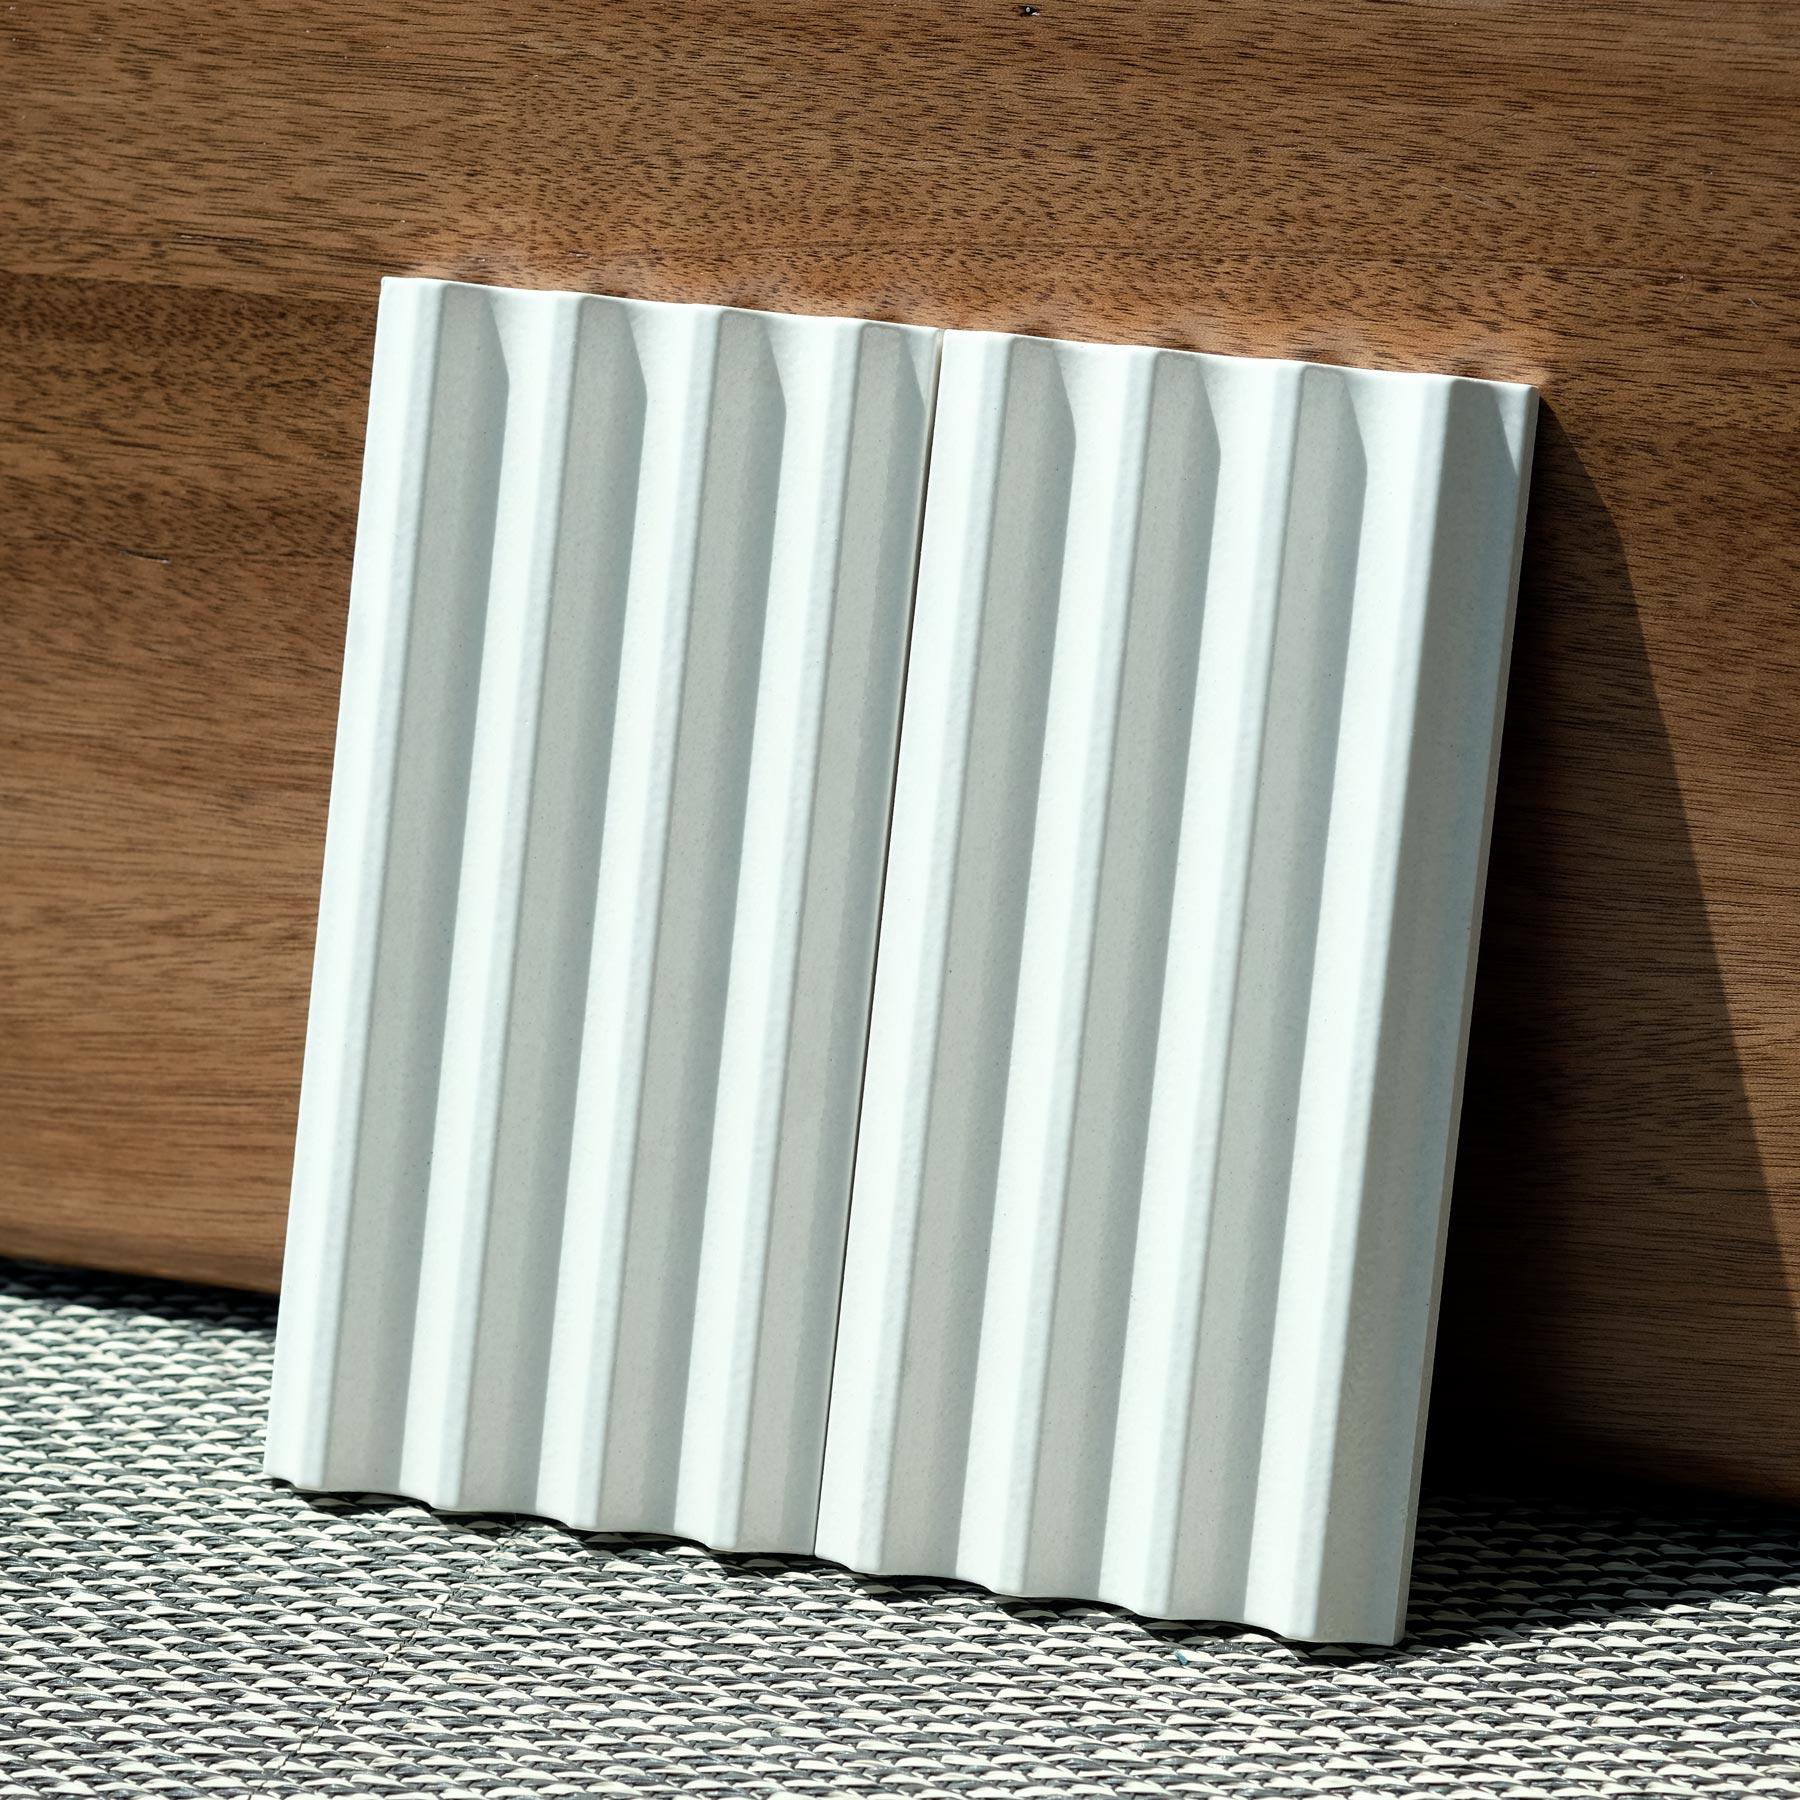 Fluted Tiles White Glossy - Matter of Stuff Fluted ceramic tiles are characterised by a smooth rippled surface. 